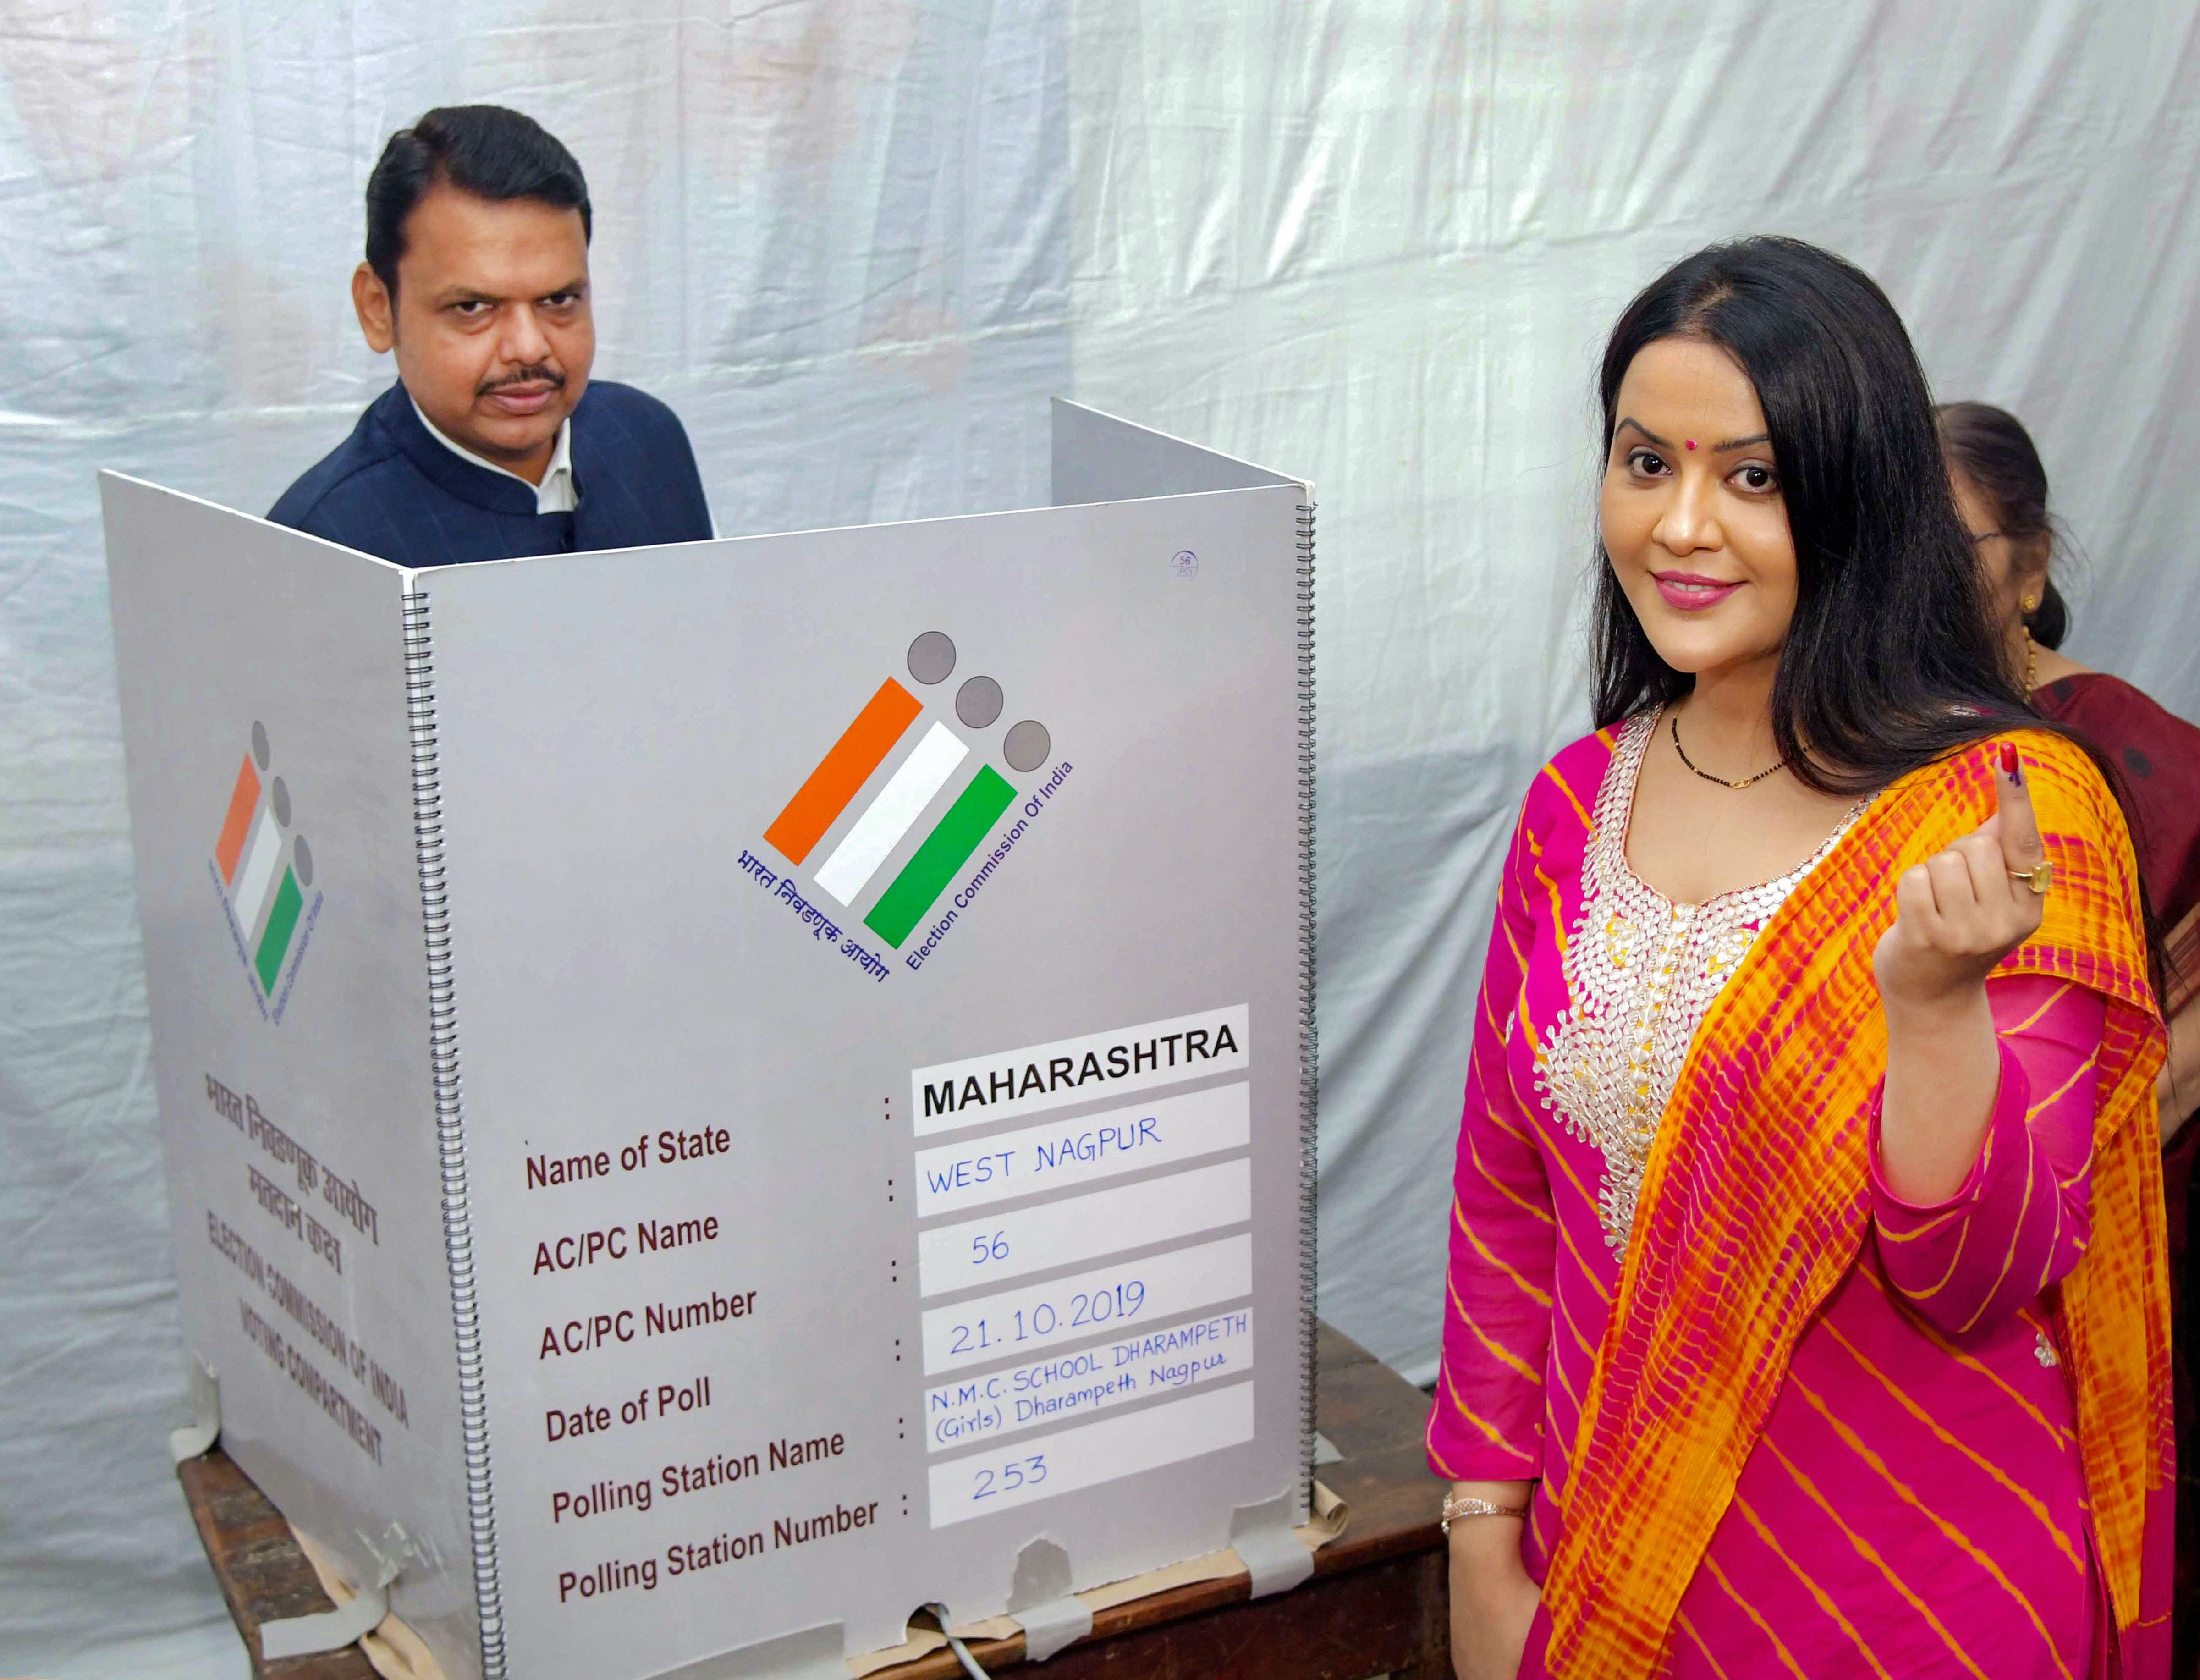 Maharashtra chief minister and Nagpur BJP candidate Devendra Fadnavis casts his vote while his wife Amruta shows her inked finger during the Maharashtra Assembly elections, in Nagpur, Monday, October 21, 2019